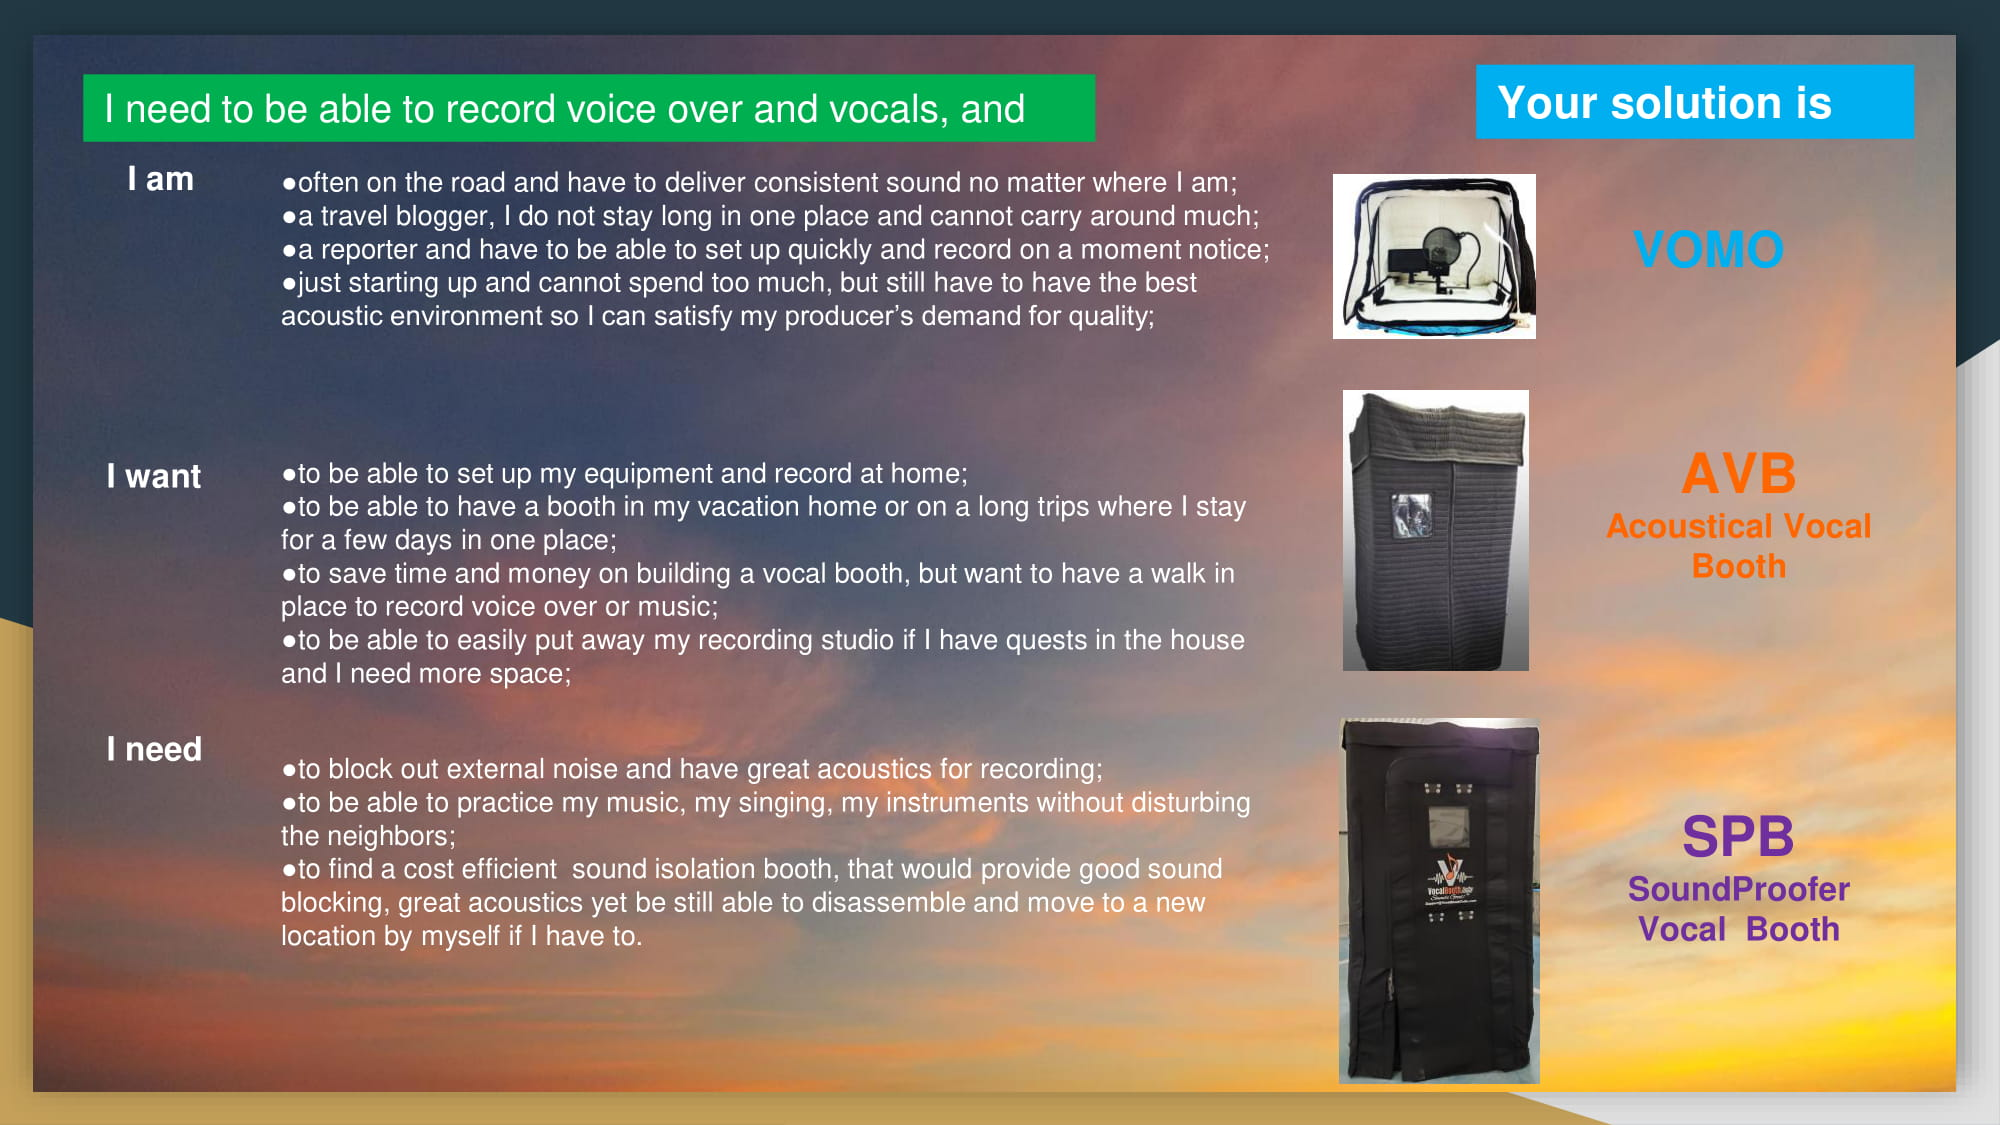 Record voice over and vocals, and solutions path